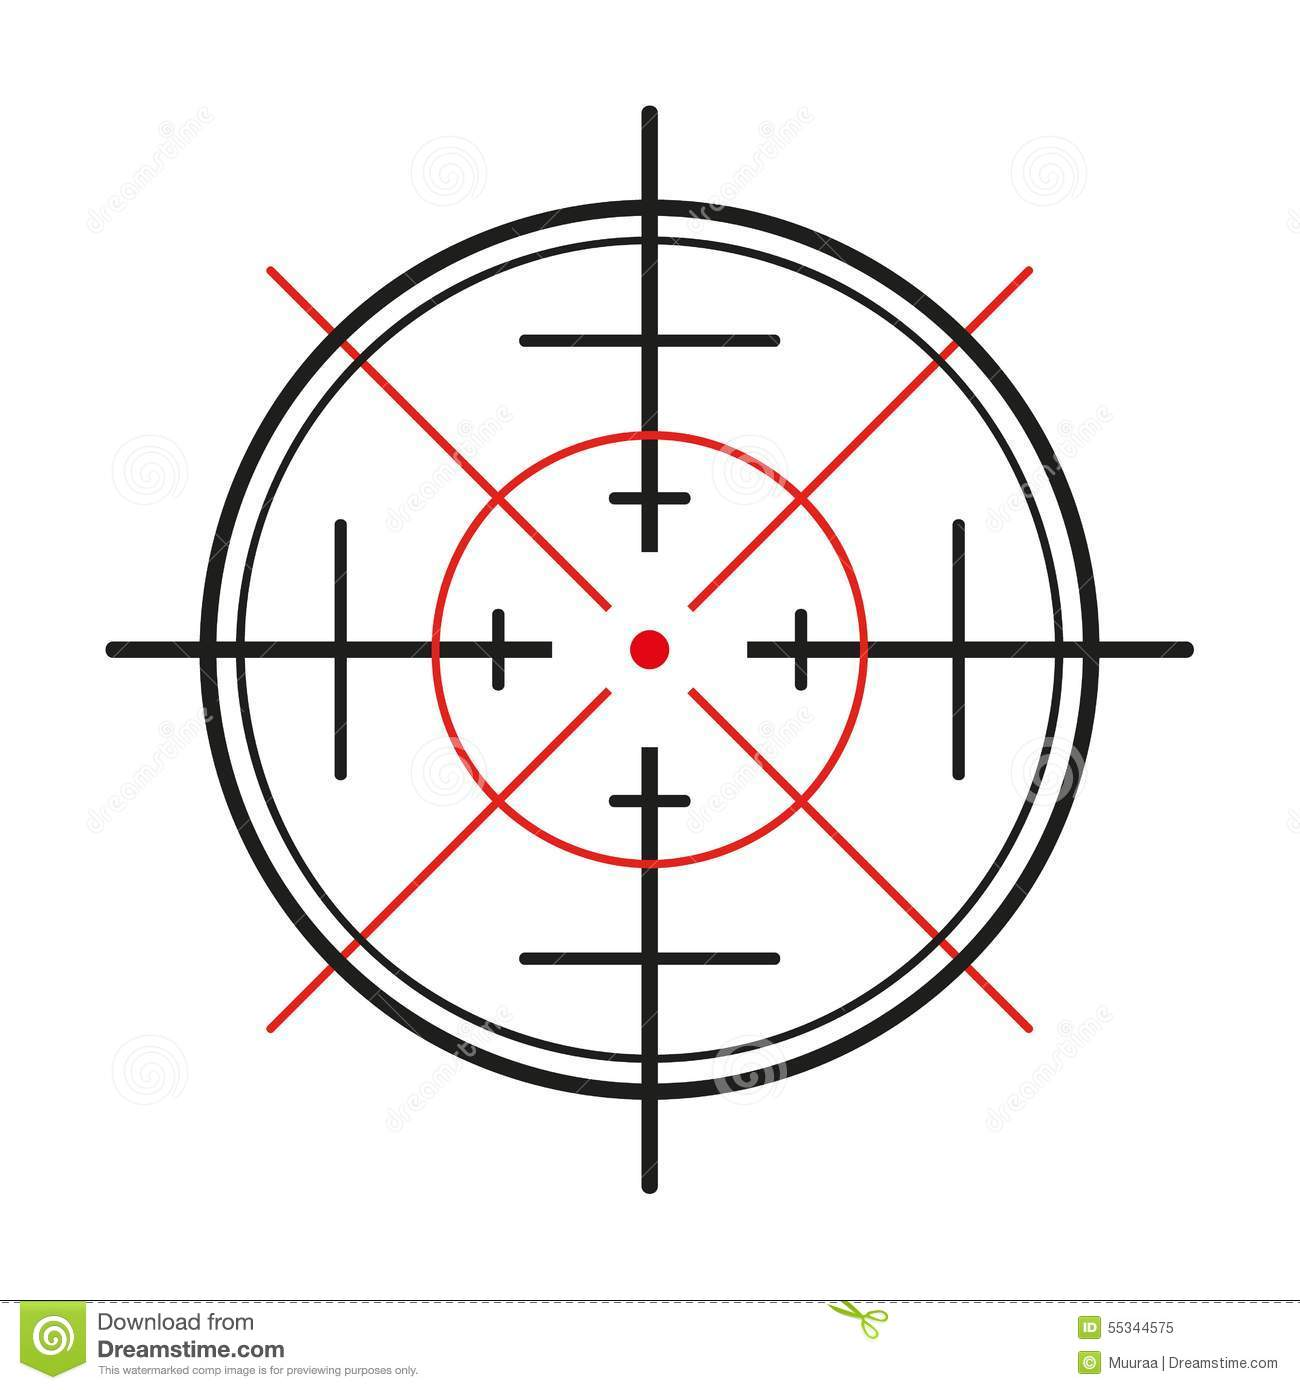 map plan with Stock Illustration Crosshair White Background Gun Image55344575 on Stock Illustration Crosshair White Background Gun Image55344575 in addition Royalty Free Stock Photo Plug Socket Image20870825 additionally Stock Illustration Business Office People Icon Set White Background Vector Image55803172 as well Royalty Free Stock Image Tatoo Design Image3086426 furthermore Stock Illustration Hand Lettering Alphabet Modern Calligraphy Vector Image65193211.